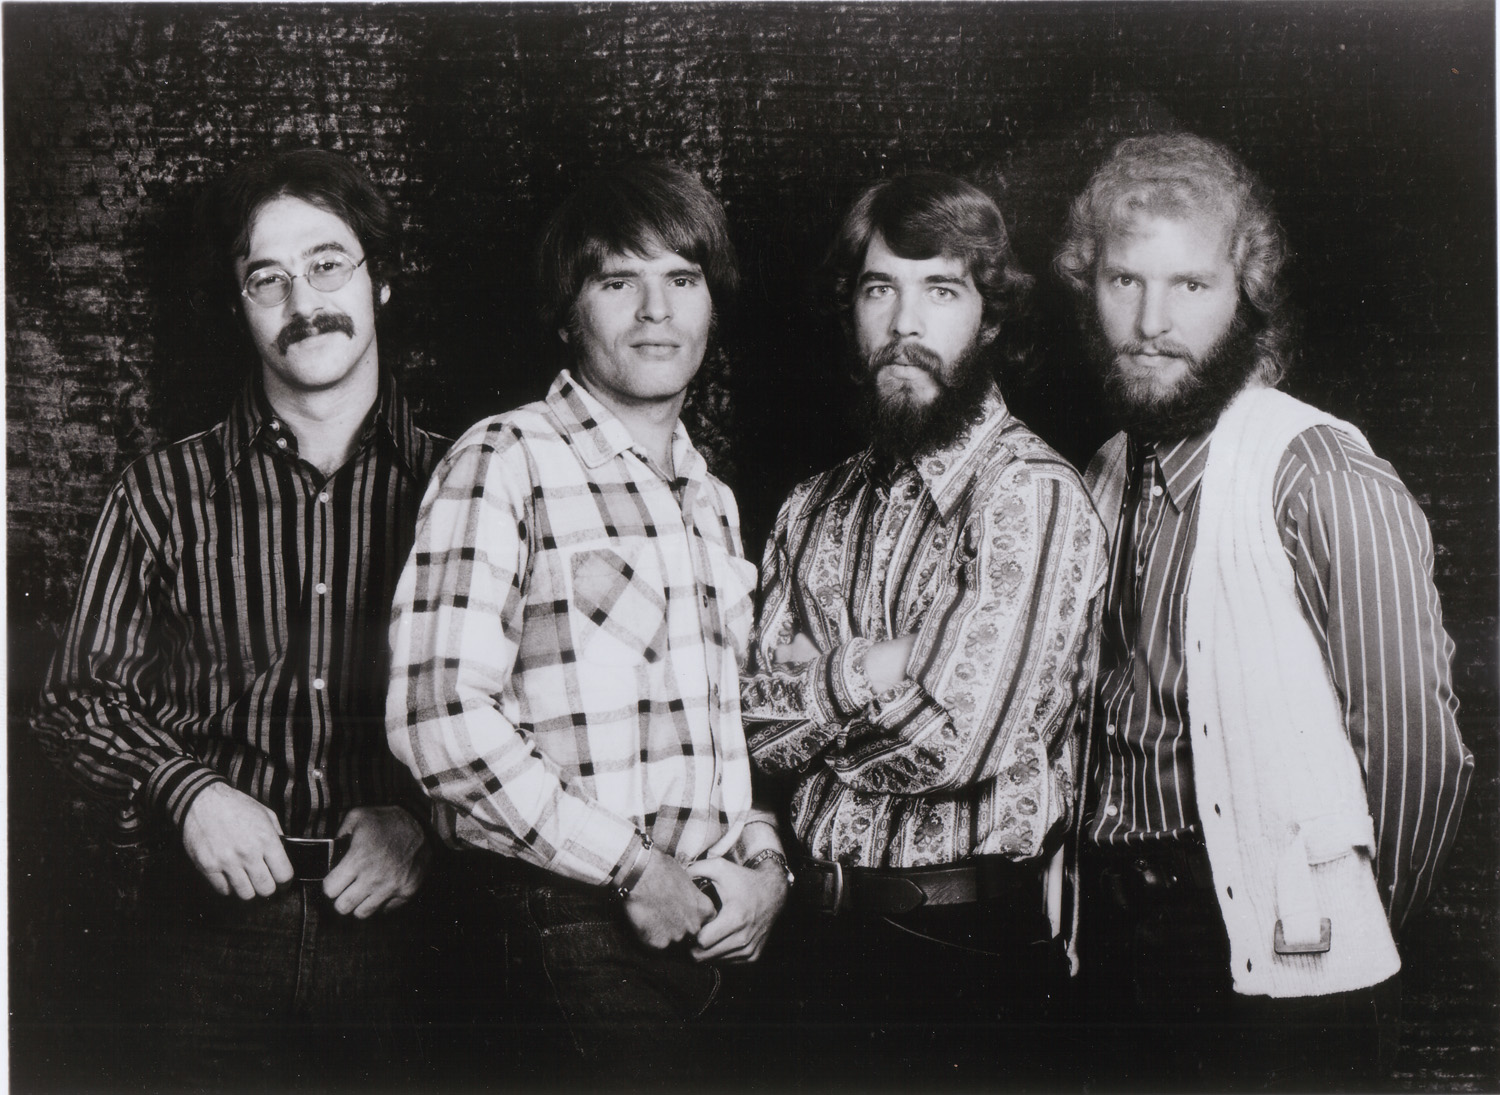 http://www.espalhafactos.com/wp-content/uploads/2012/04/creedence_clearwater_revival_704382_35922.jpg